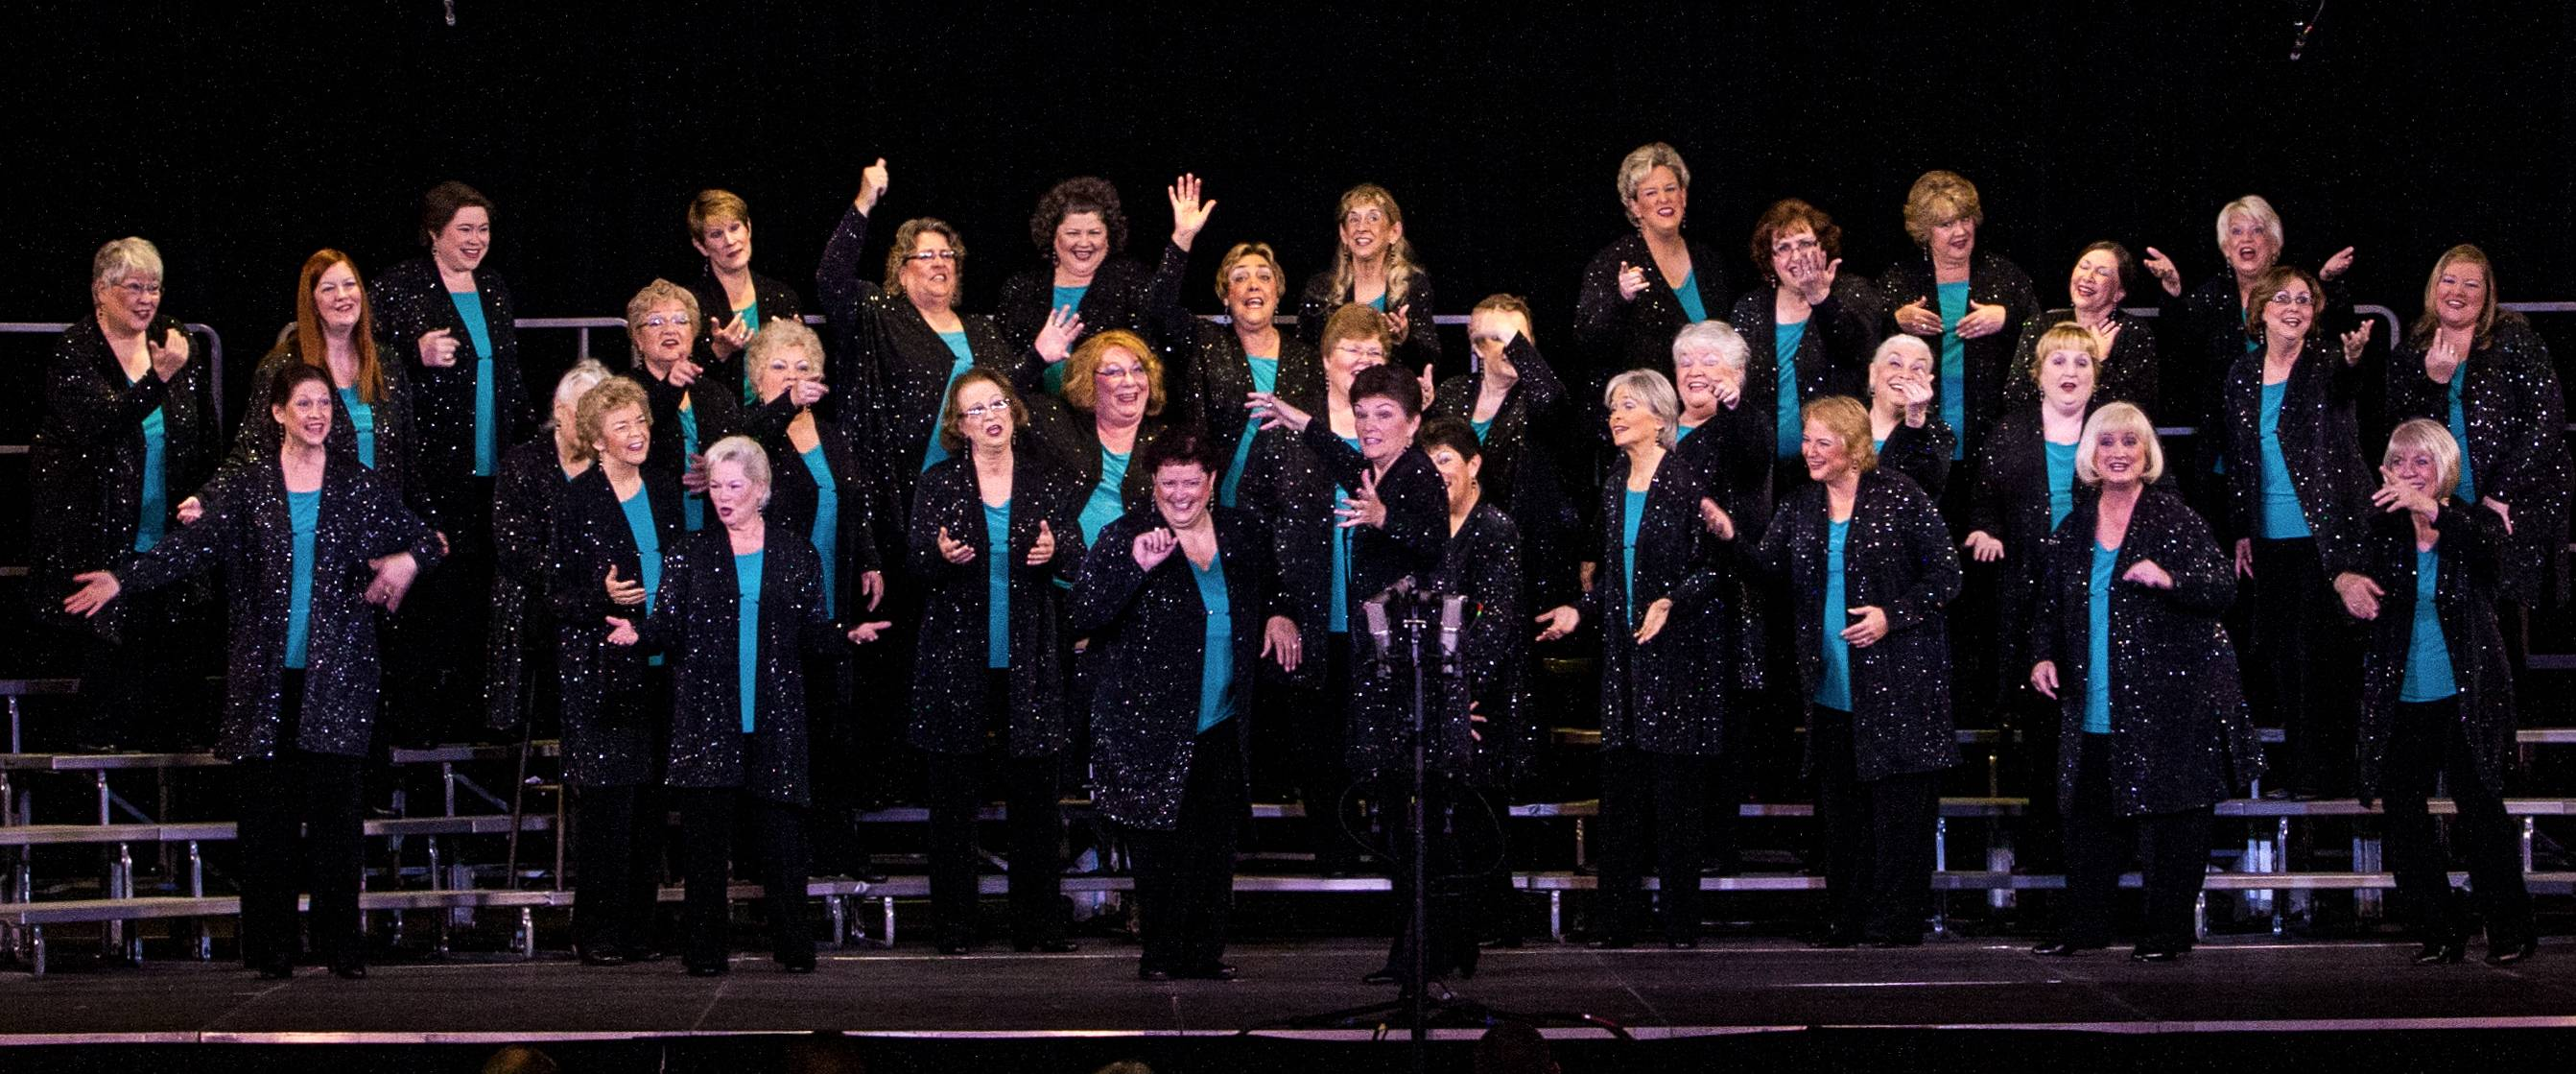 The Village Vocal Chords last competed in November in Windsor, Ontario, Canada, where they became the organization's championship chorus for an unprecedented 19 times.